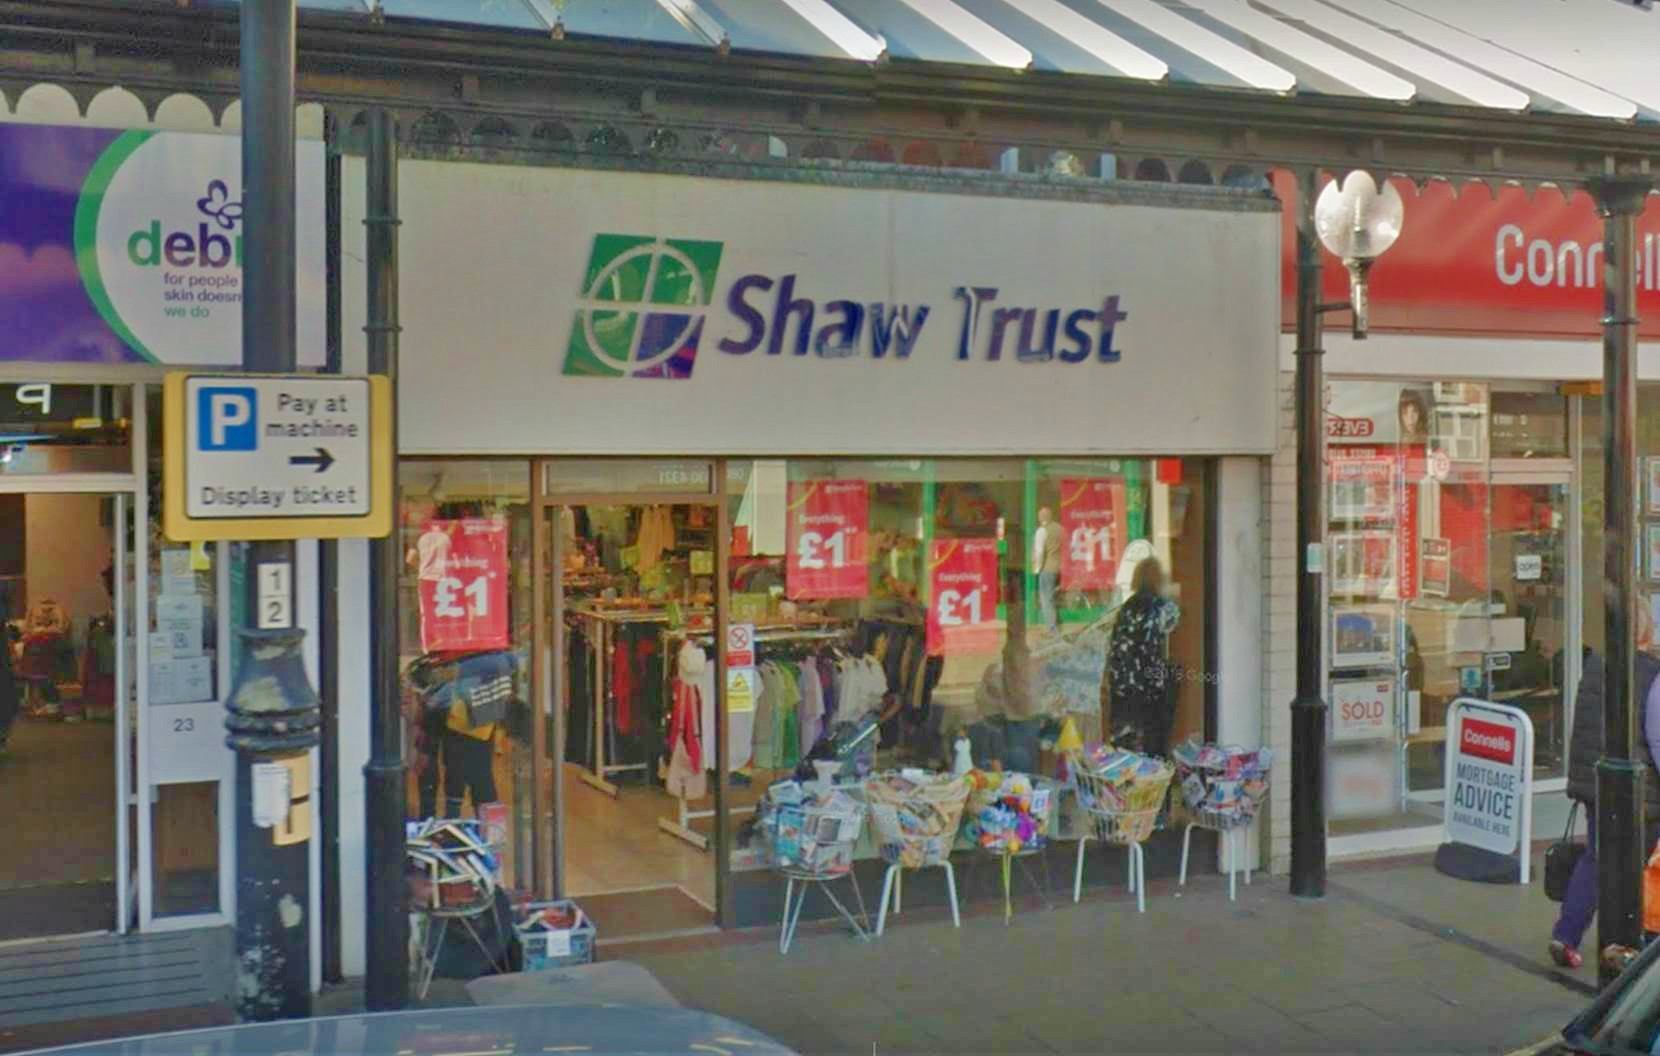 Shaw Trust - Charity shop - Eastleigh - Eastleigh, Hampshire SO50 5RH - 02380 615031 | ShowMeLocal.com